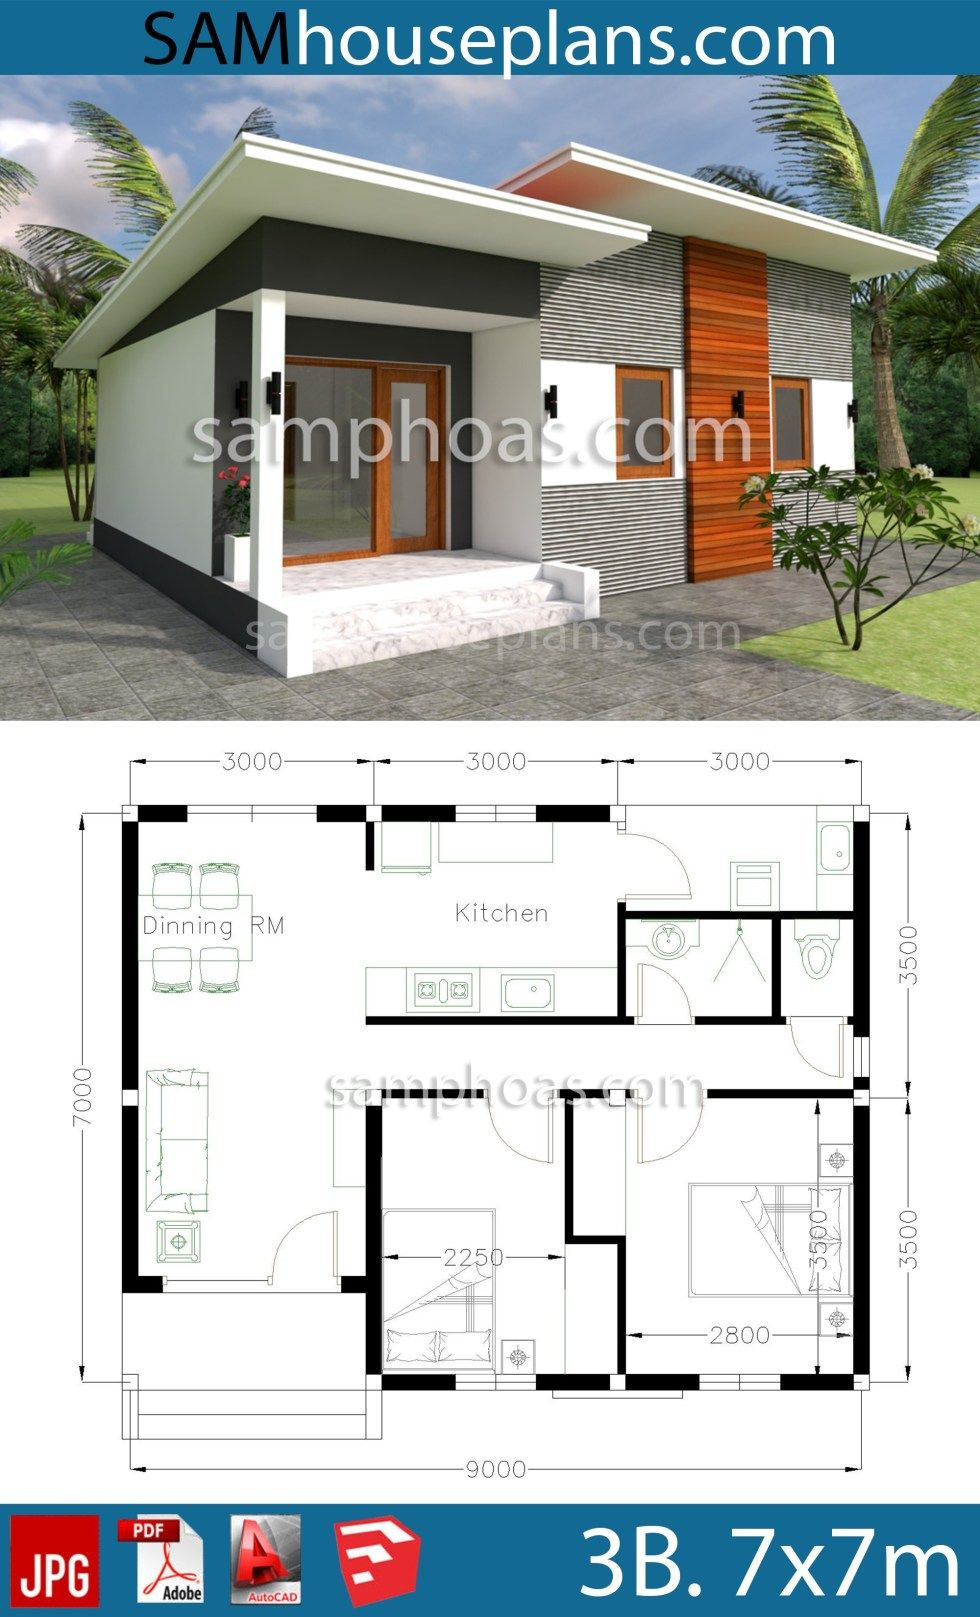 Modern Small House Plans Beautiful House Plans 9x7m with 2 Bedrooms